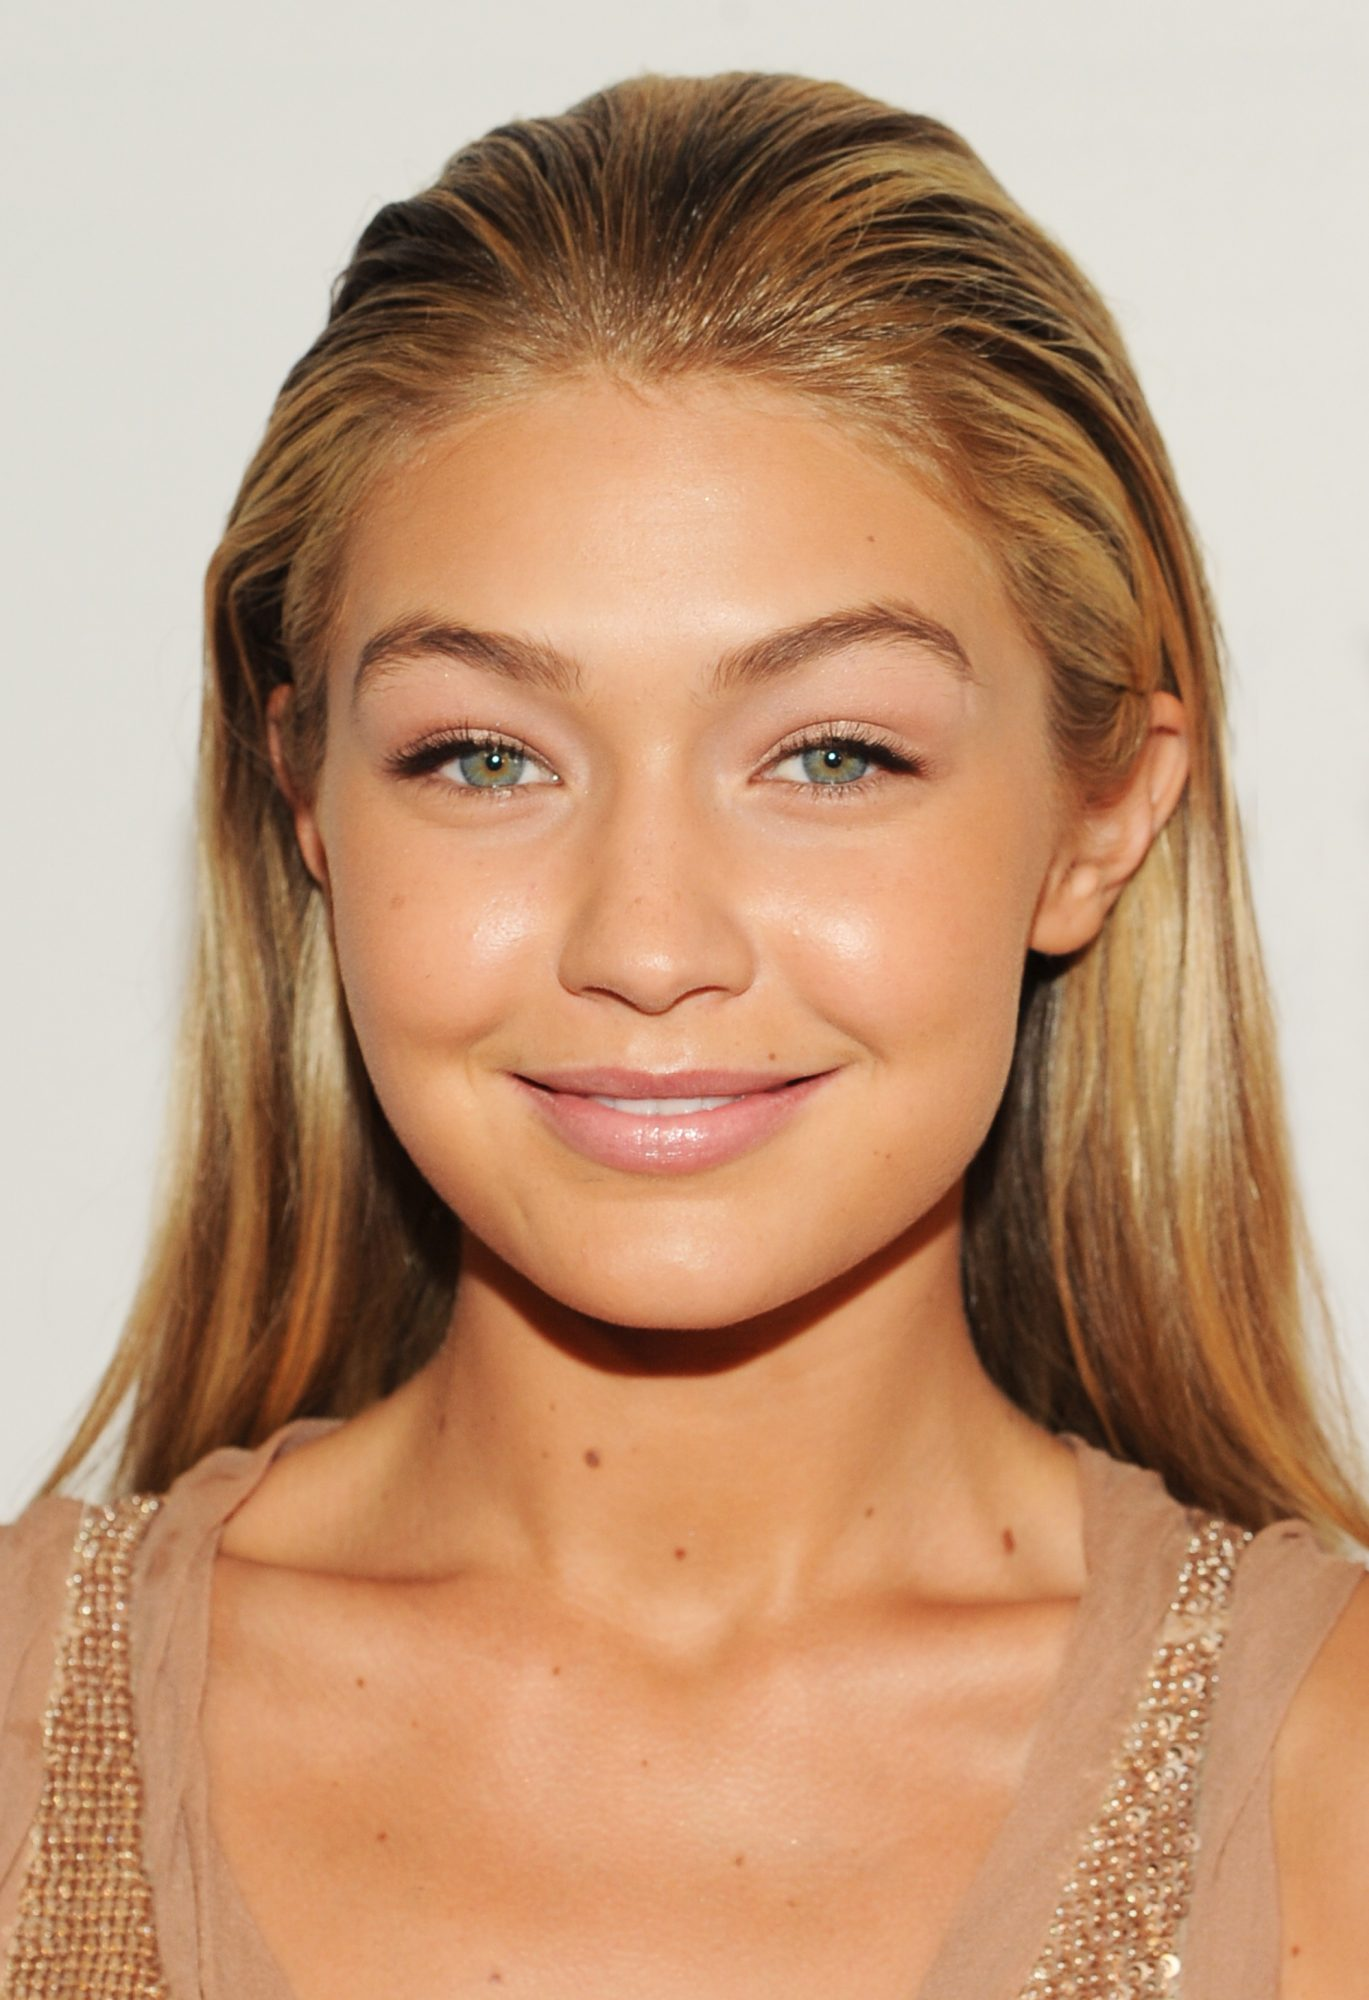 Gigi Hadid - September 5, 2014